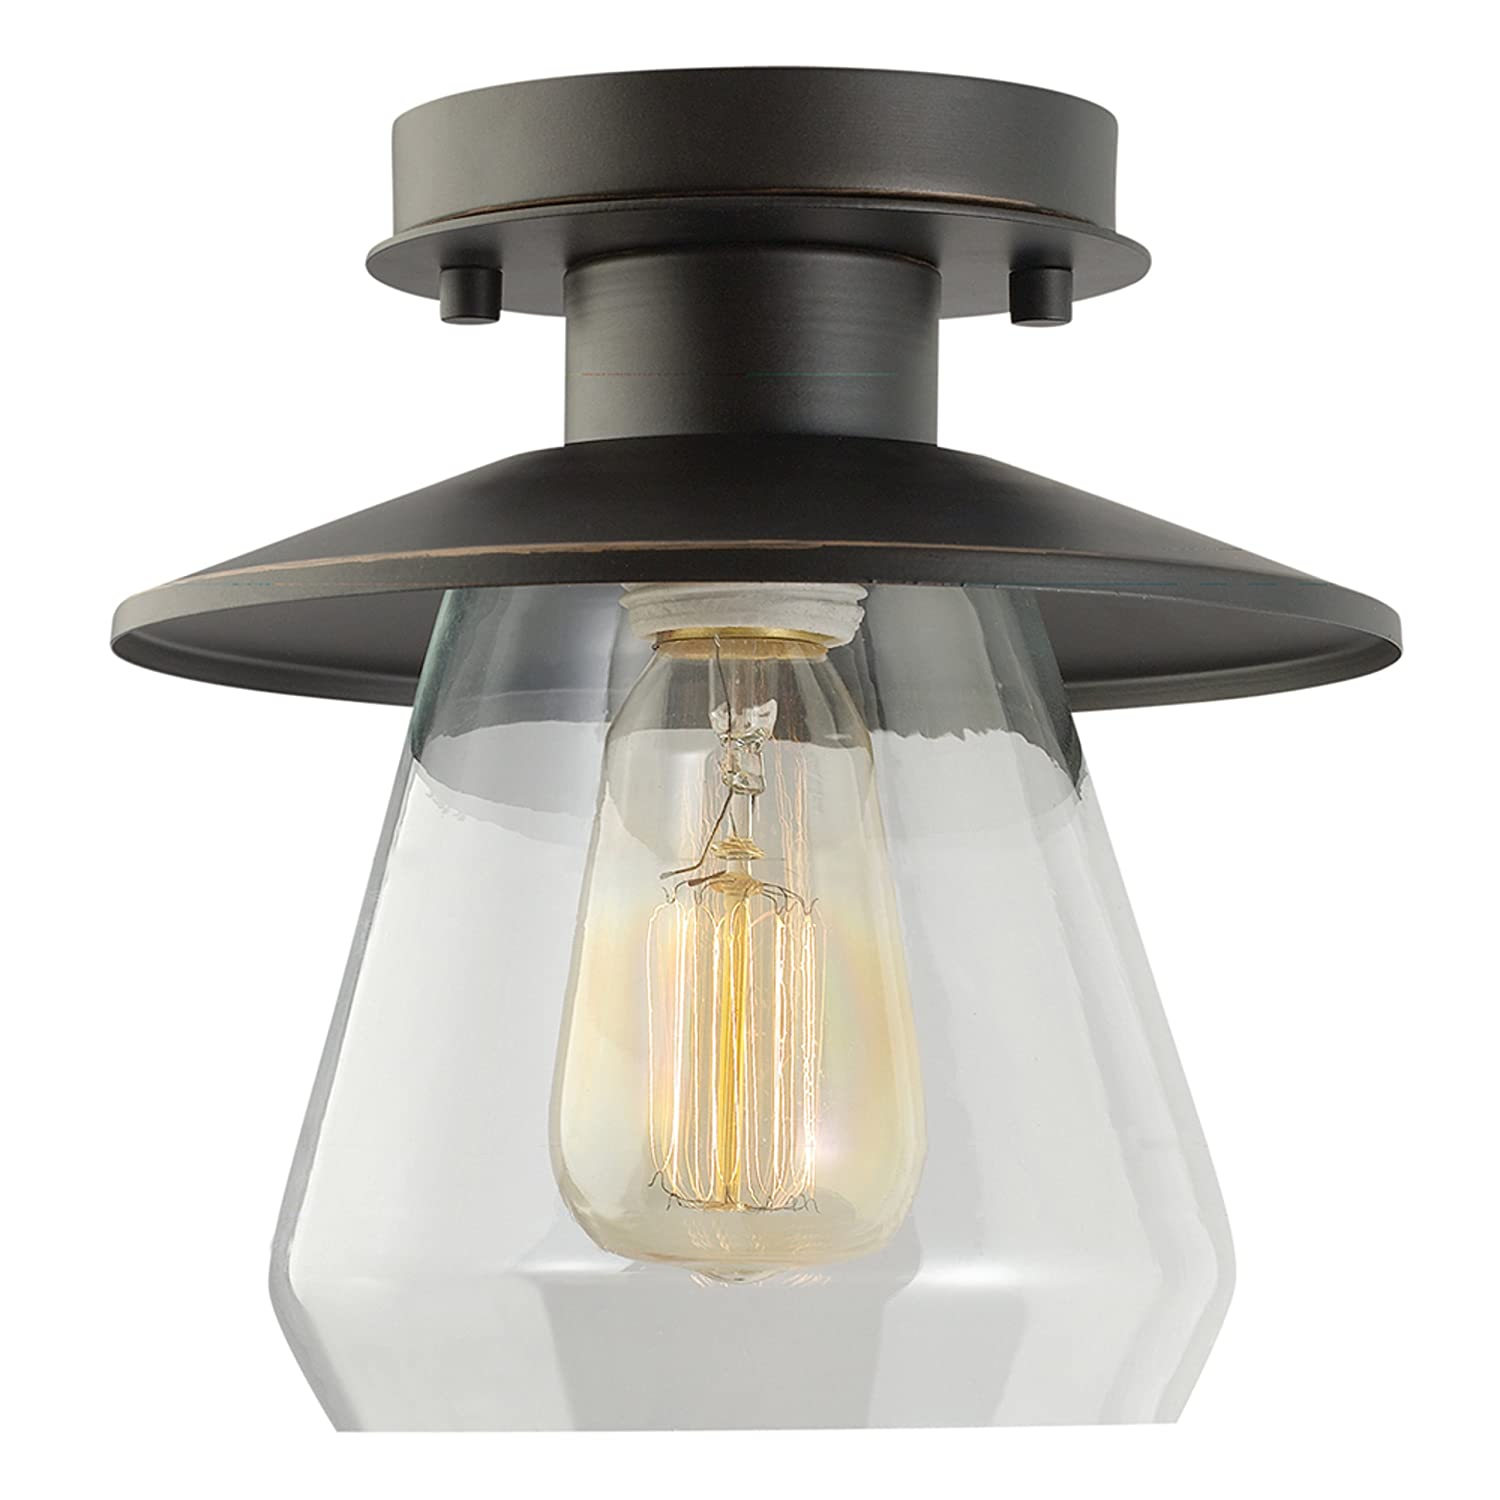 globe rubbed glass amazon light flush ceilings dp shade nate canada ceiling lights to semi oil finish mount clear electric close bronze